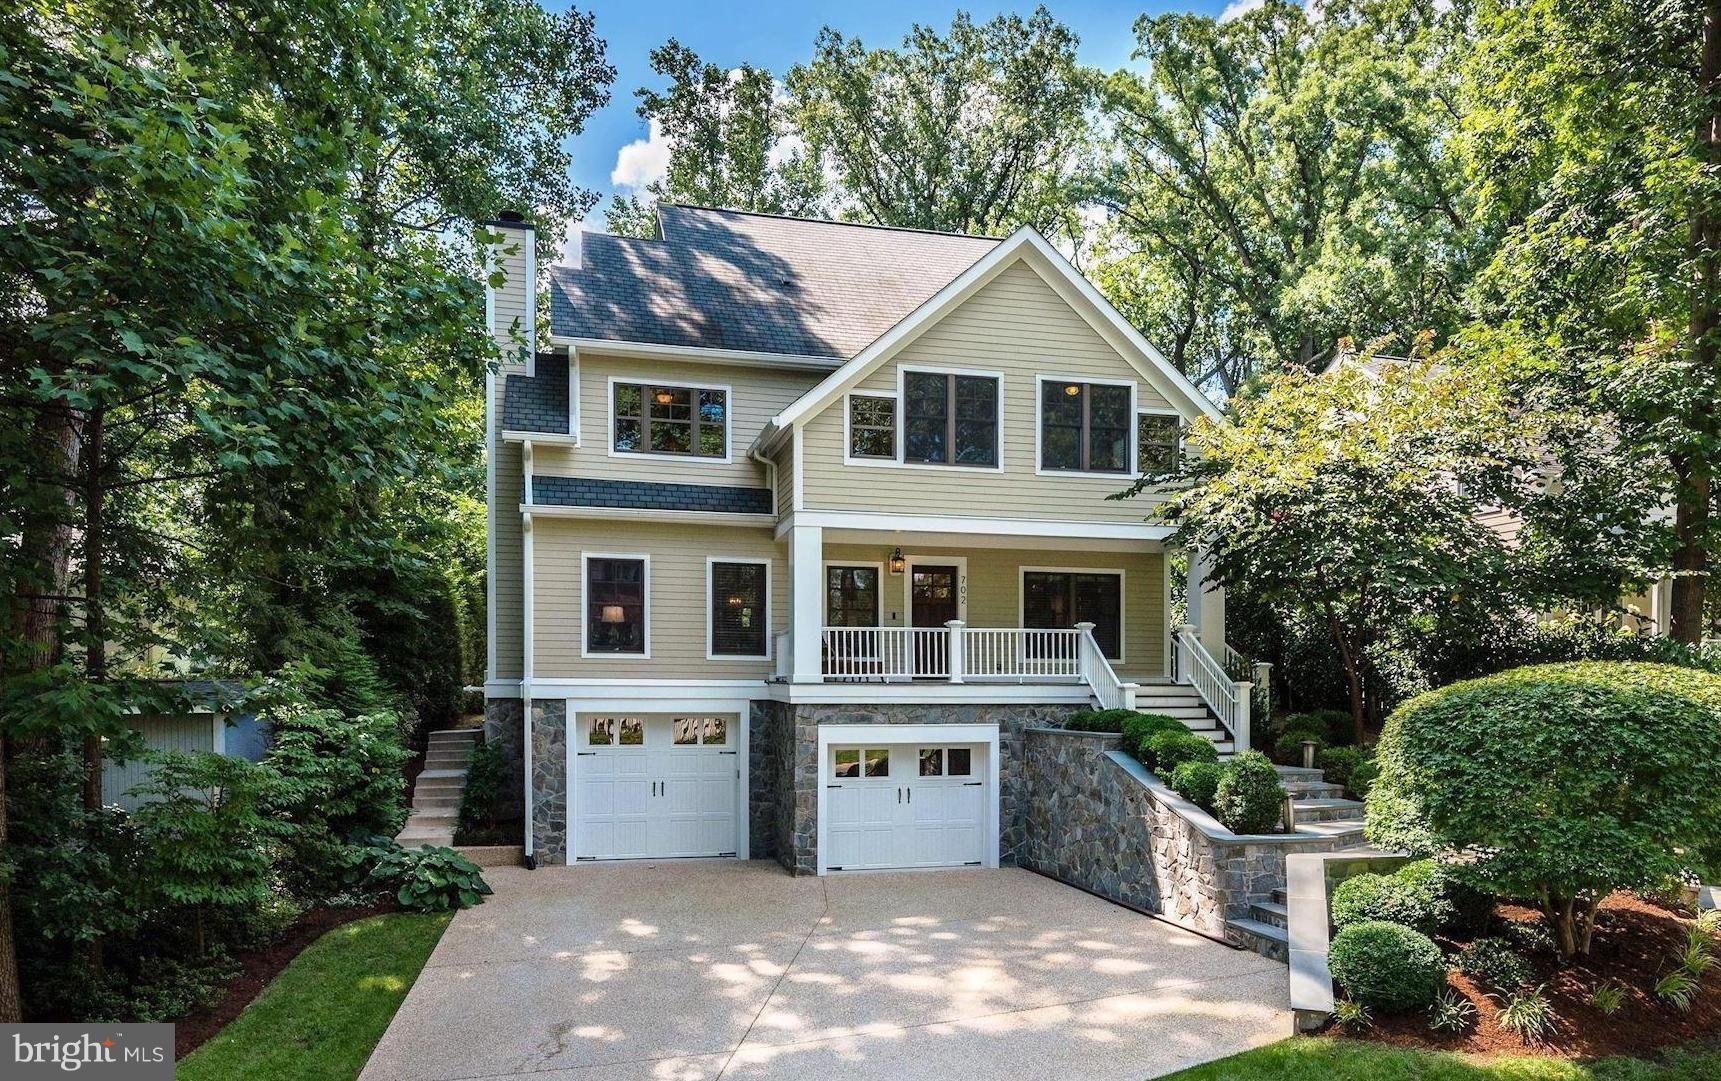 Exquisite 6BR 5.5BA custom home w/ oversized 2-car gar in park-like setting-over 5,200SF of luxury! Fabulous Kit w/ 6-burner stove, dbl oven, 2 D/Washers, granite & bkfast nook. Main LVL guest suite, den, 2 FPLs, wet bar & built-ins. MBR/BA w/ dual showerheads & 2 walk-in cls. HUGE LL Rec Rm w/ exercise & 6th BR. Cozy front porch, screened porch, outdoor irrigation/lighting, gas generator & MORE!